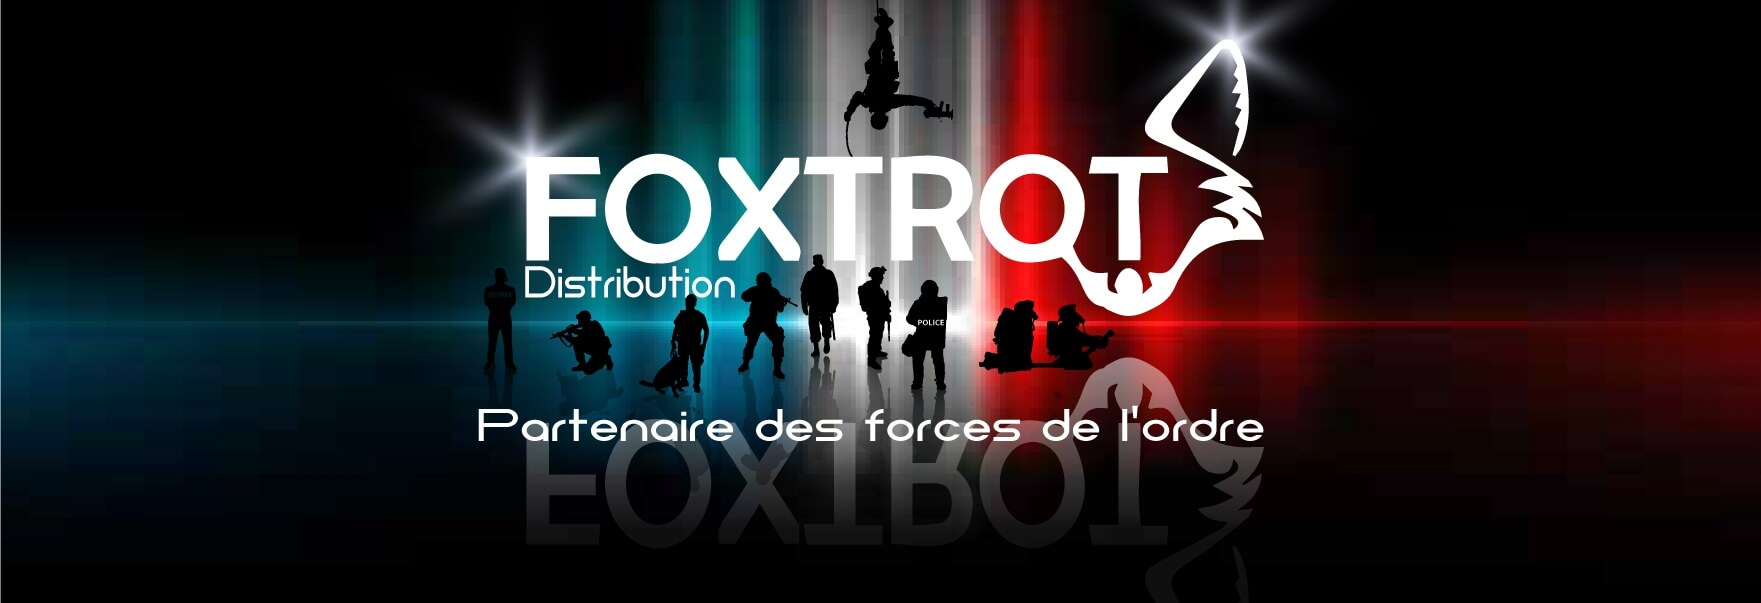 Foxtrot distribution